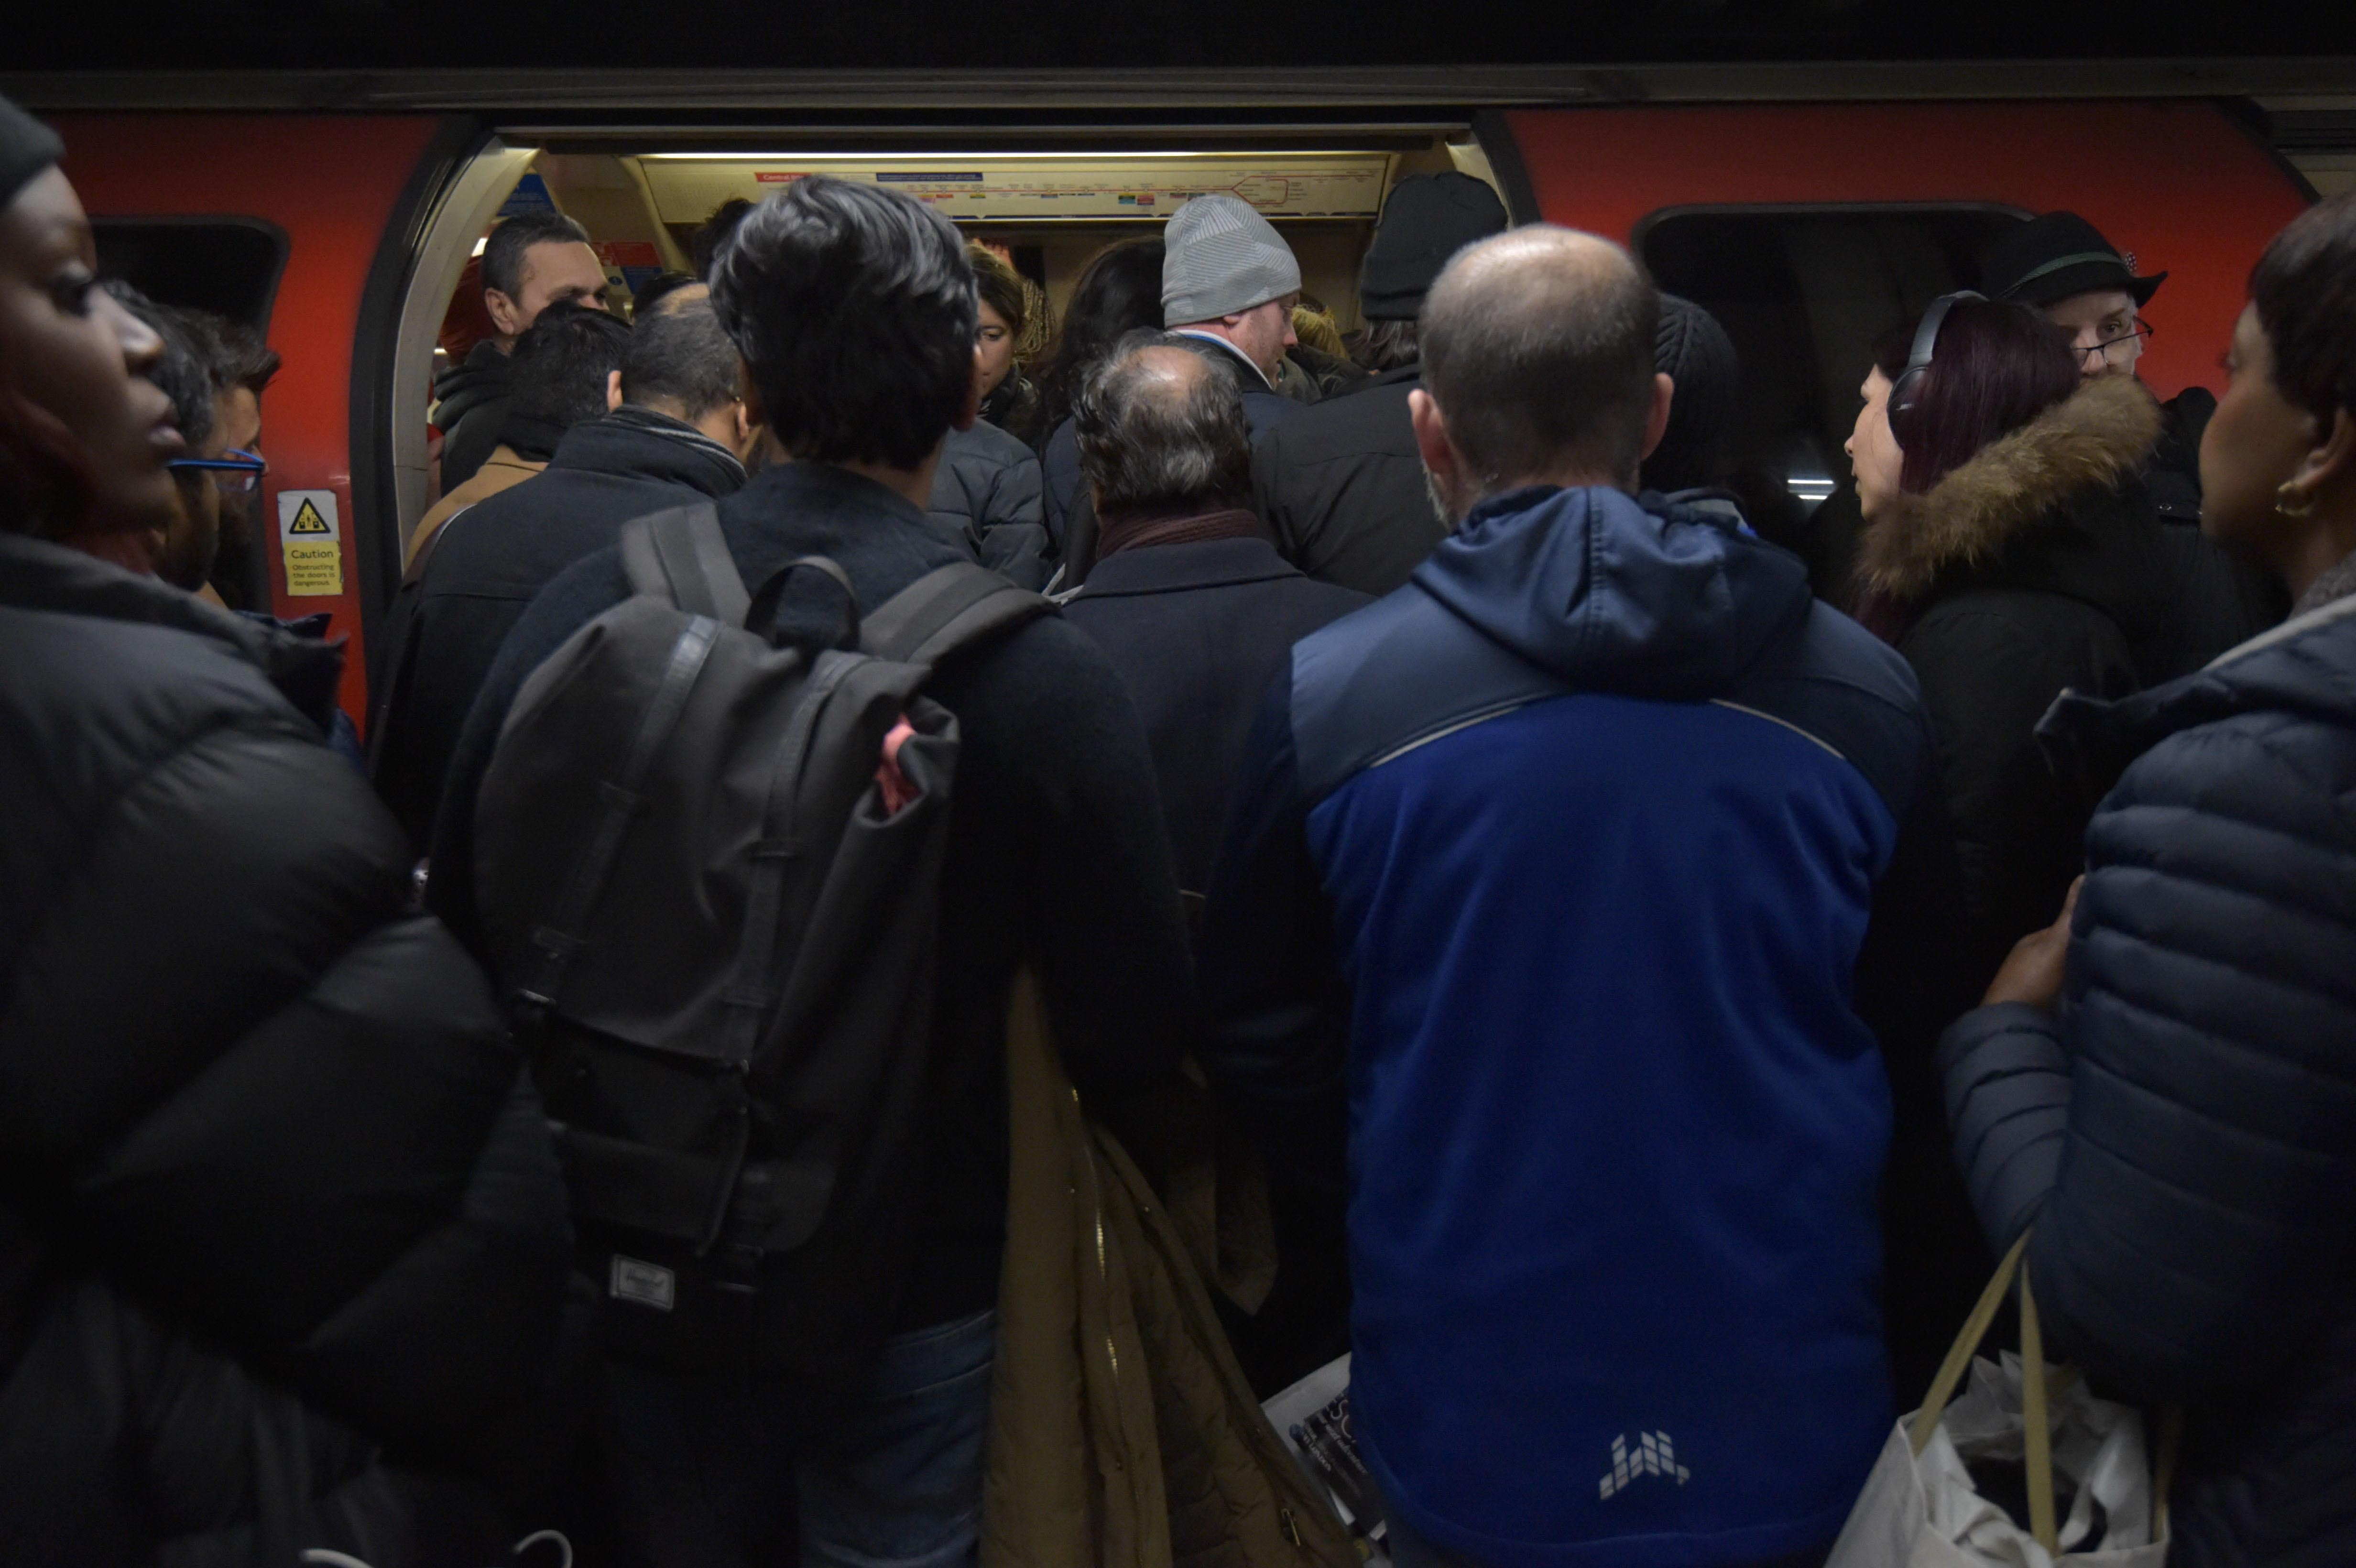 Overcrowding on the Central Line of the London Underground at Mile End station in east London. PA Photo. Picture date: Friday January 31, 2020. Photo credit should read: Nick Ansell/PA Wire